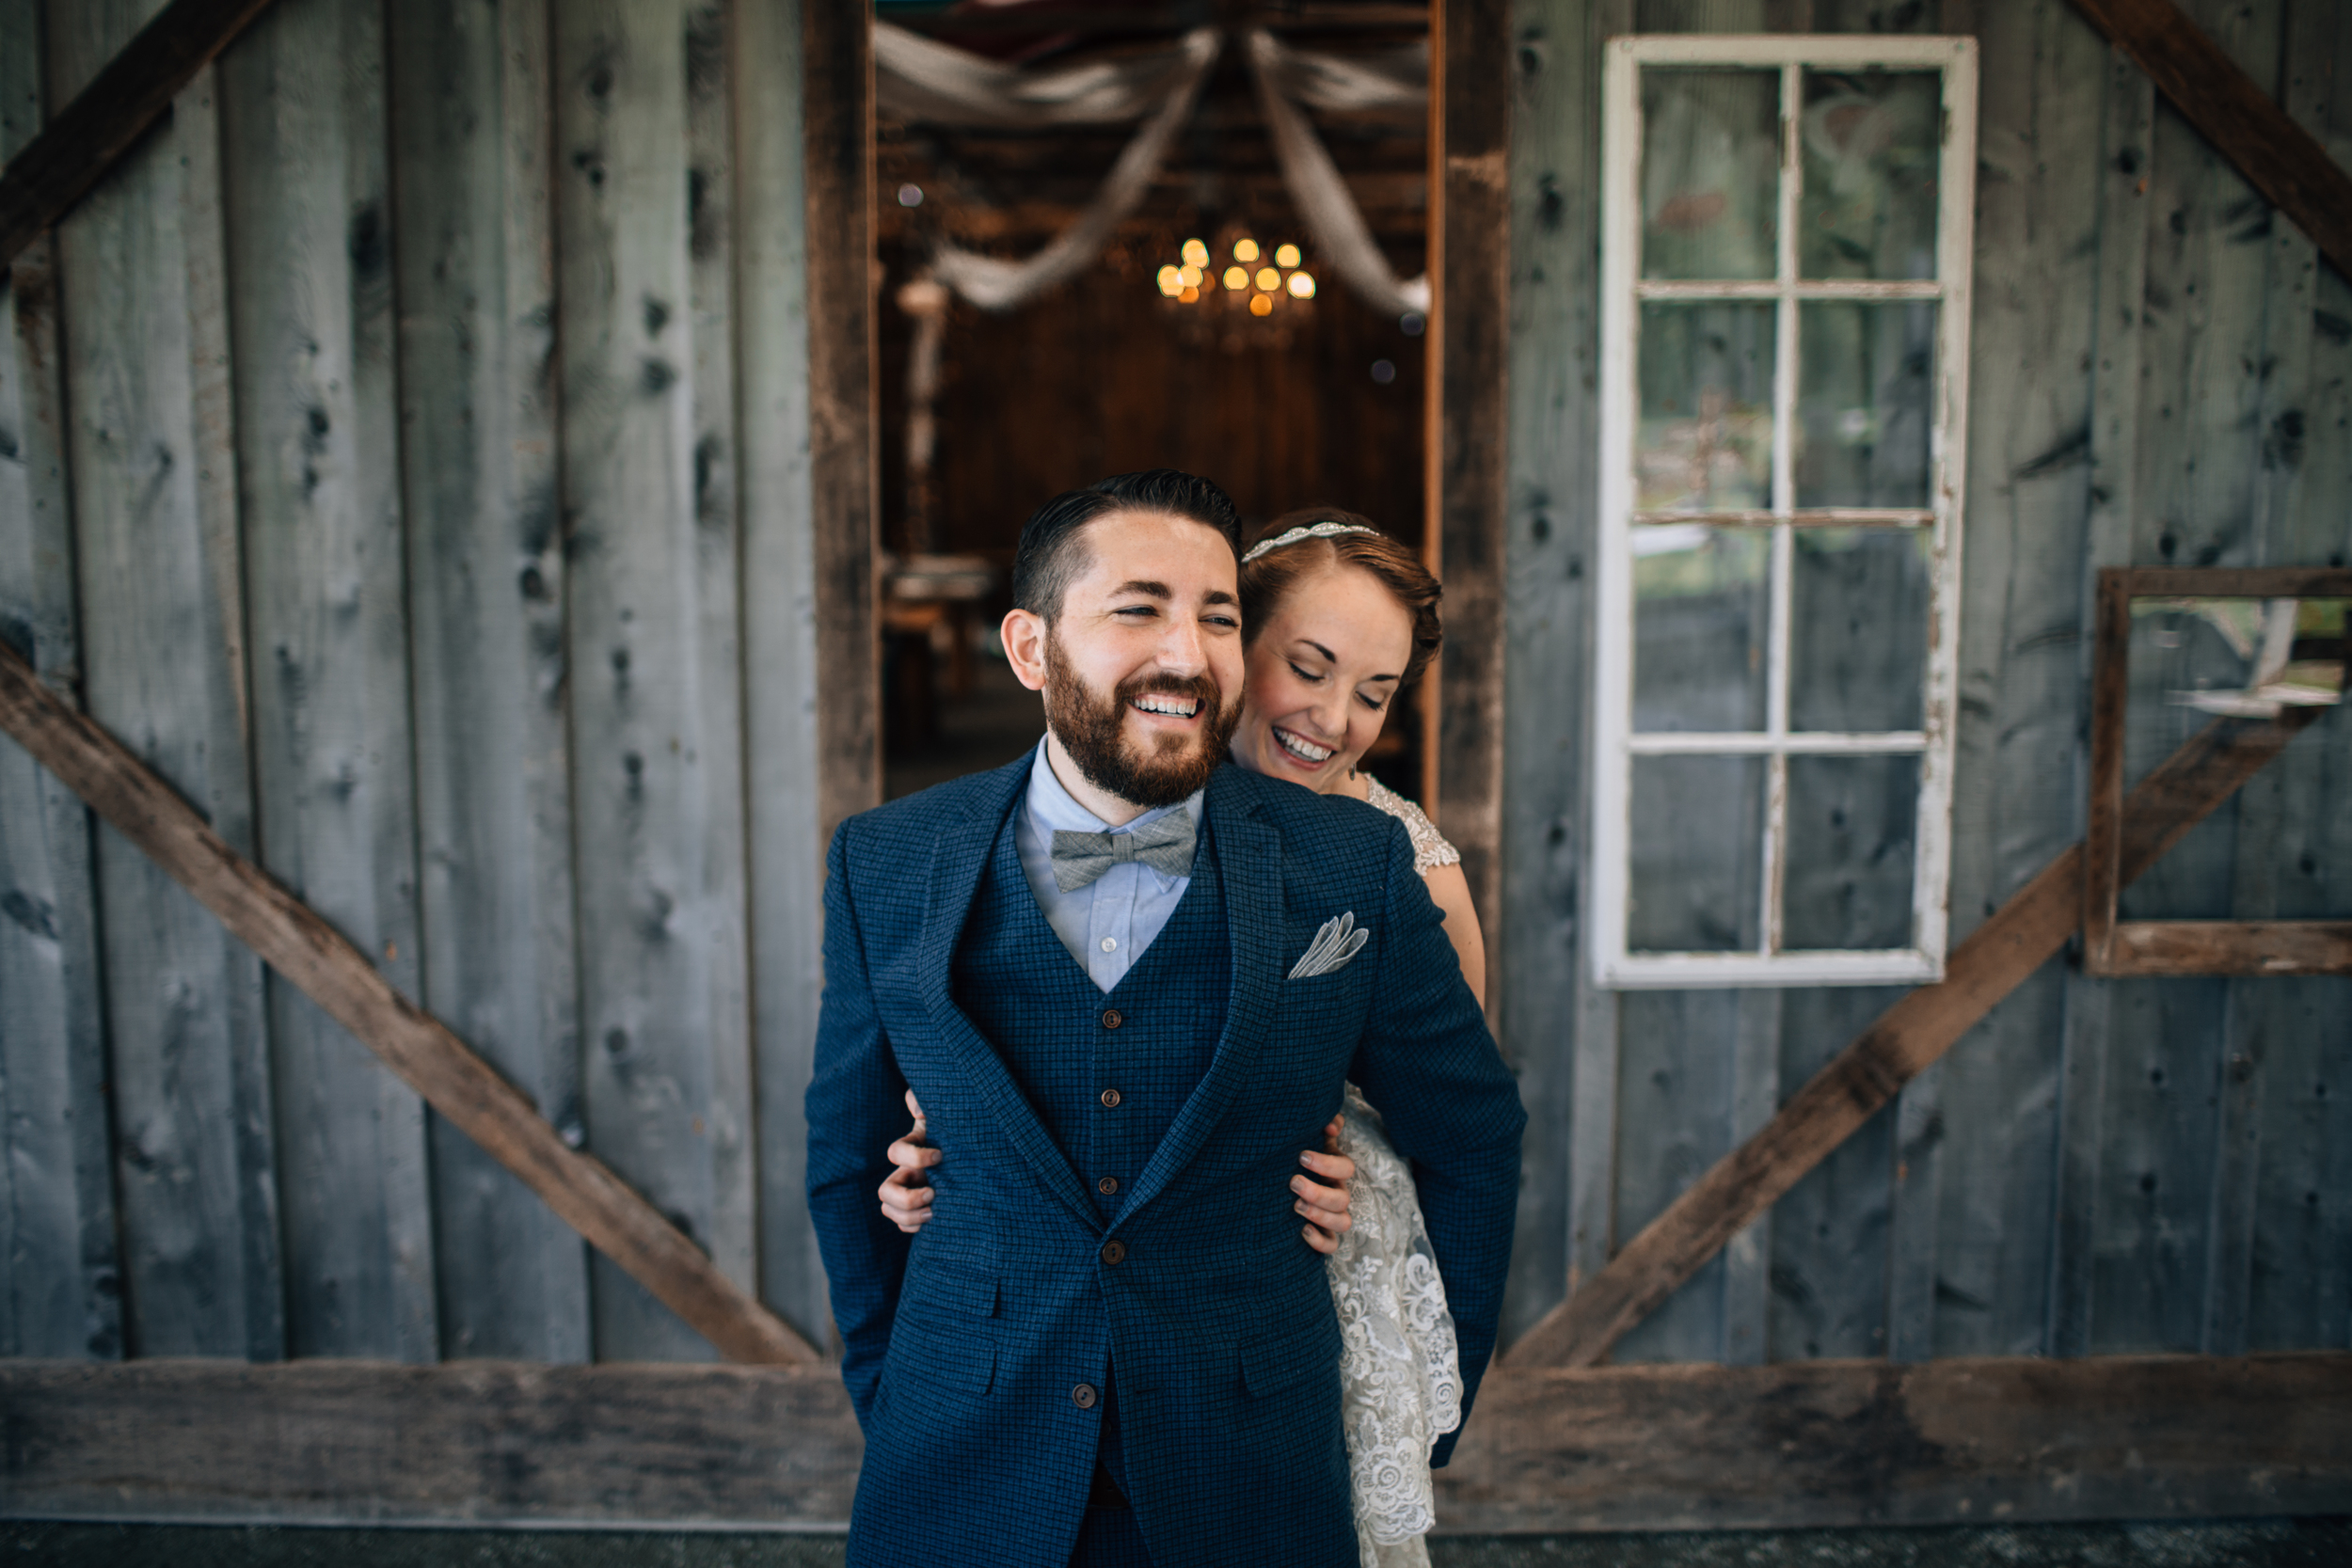 KELLIandBRADweddingJUNE2015 - firstlook (17 of 26).jpg